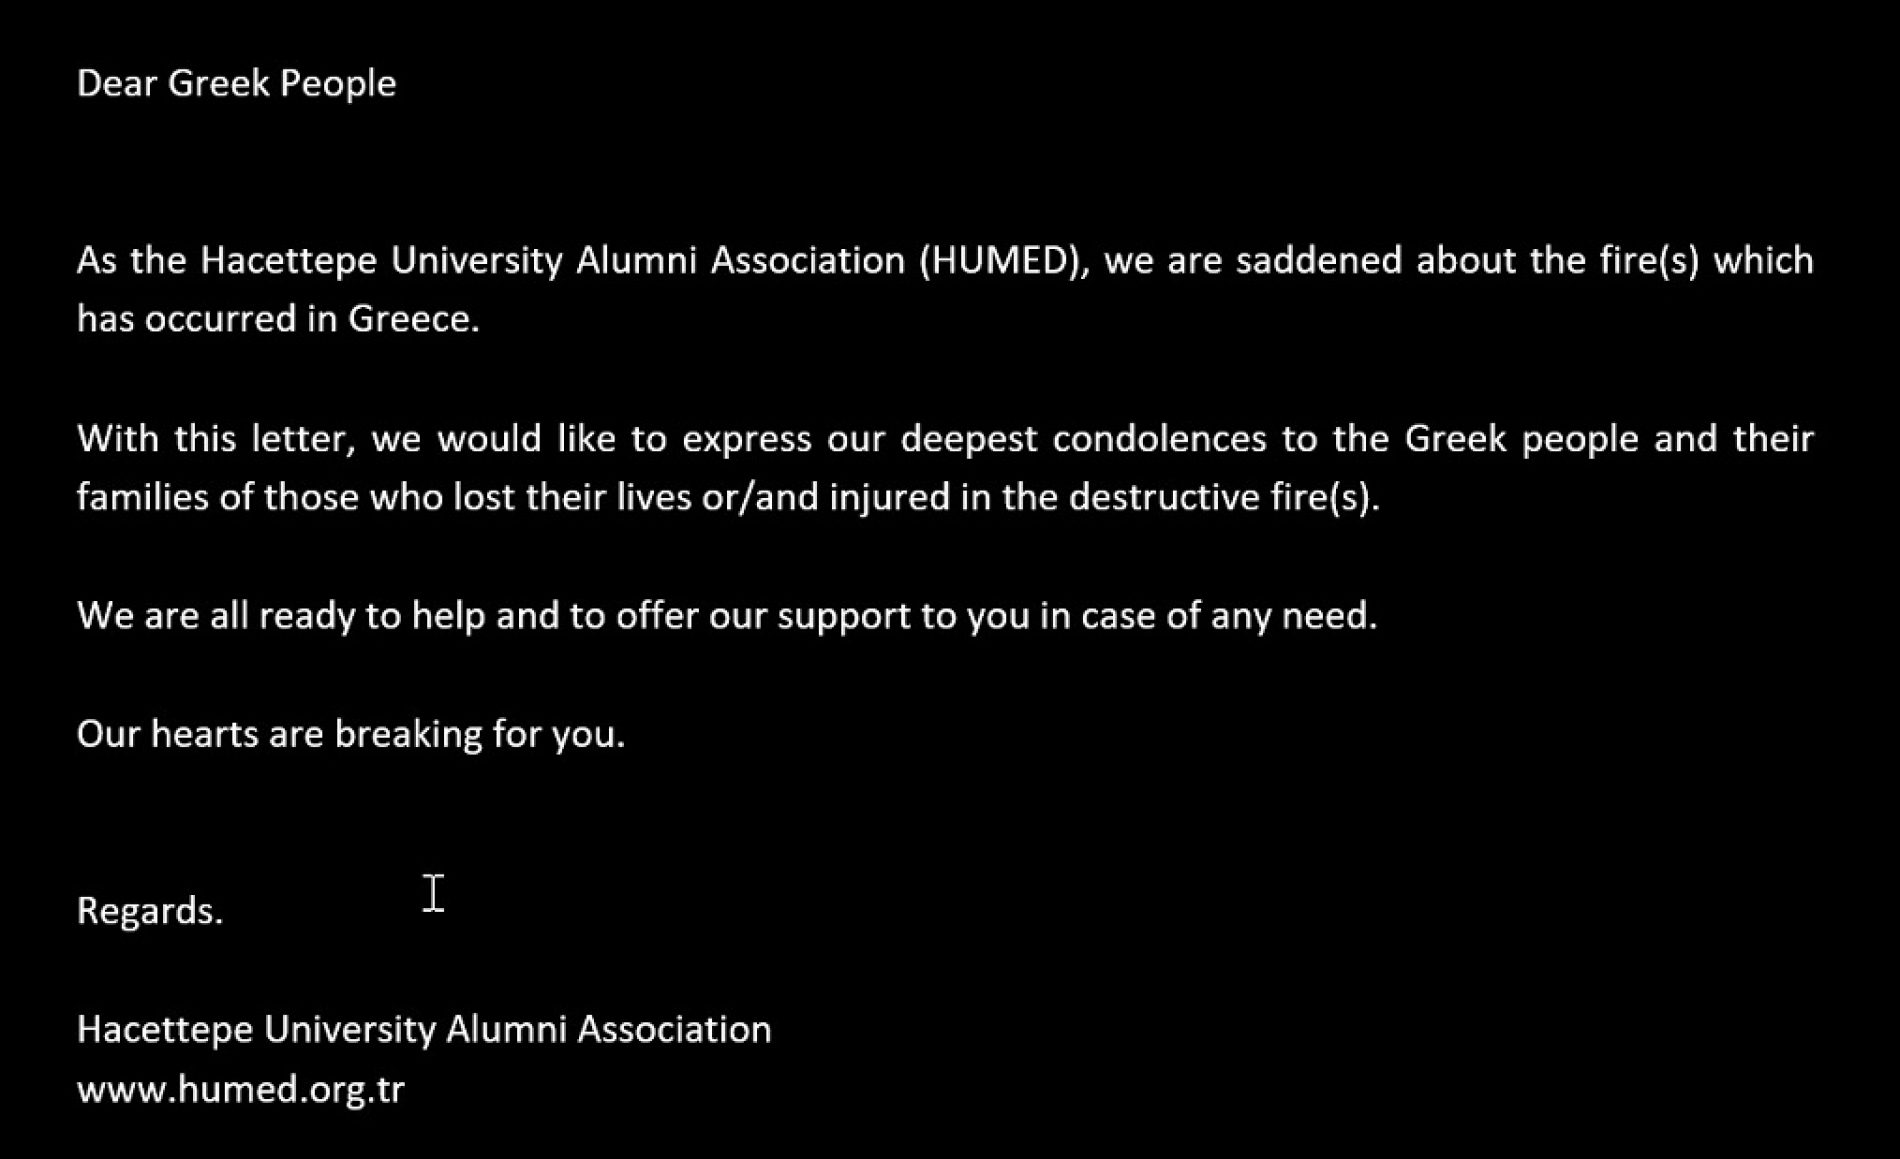 Express our deepest condolences to the Greek people